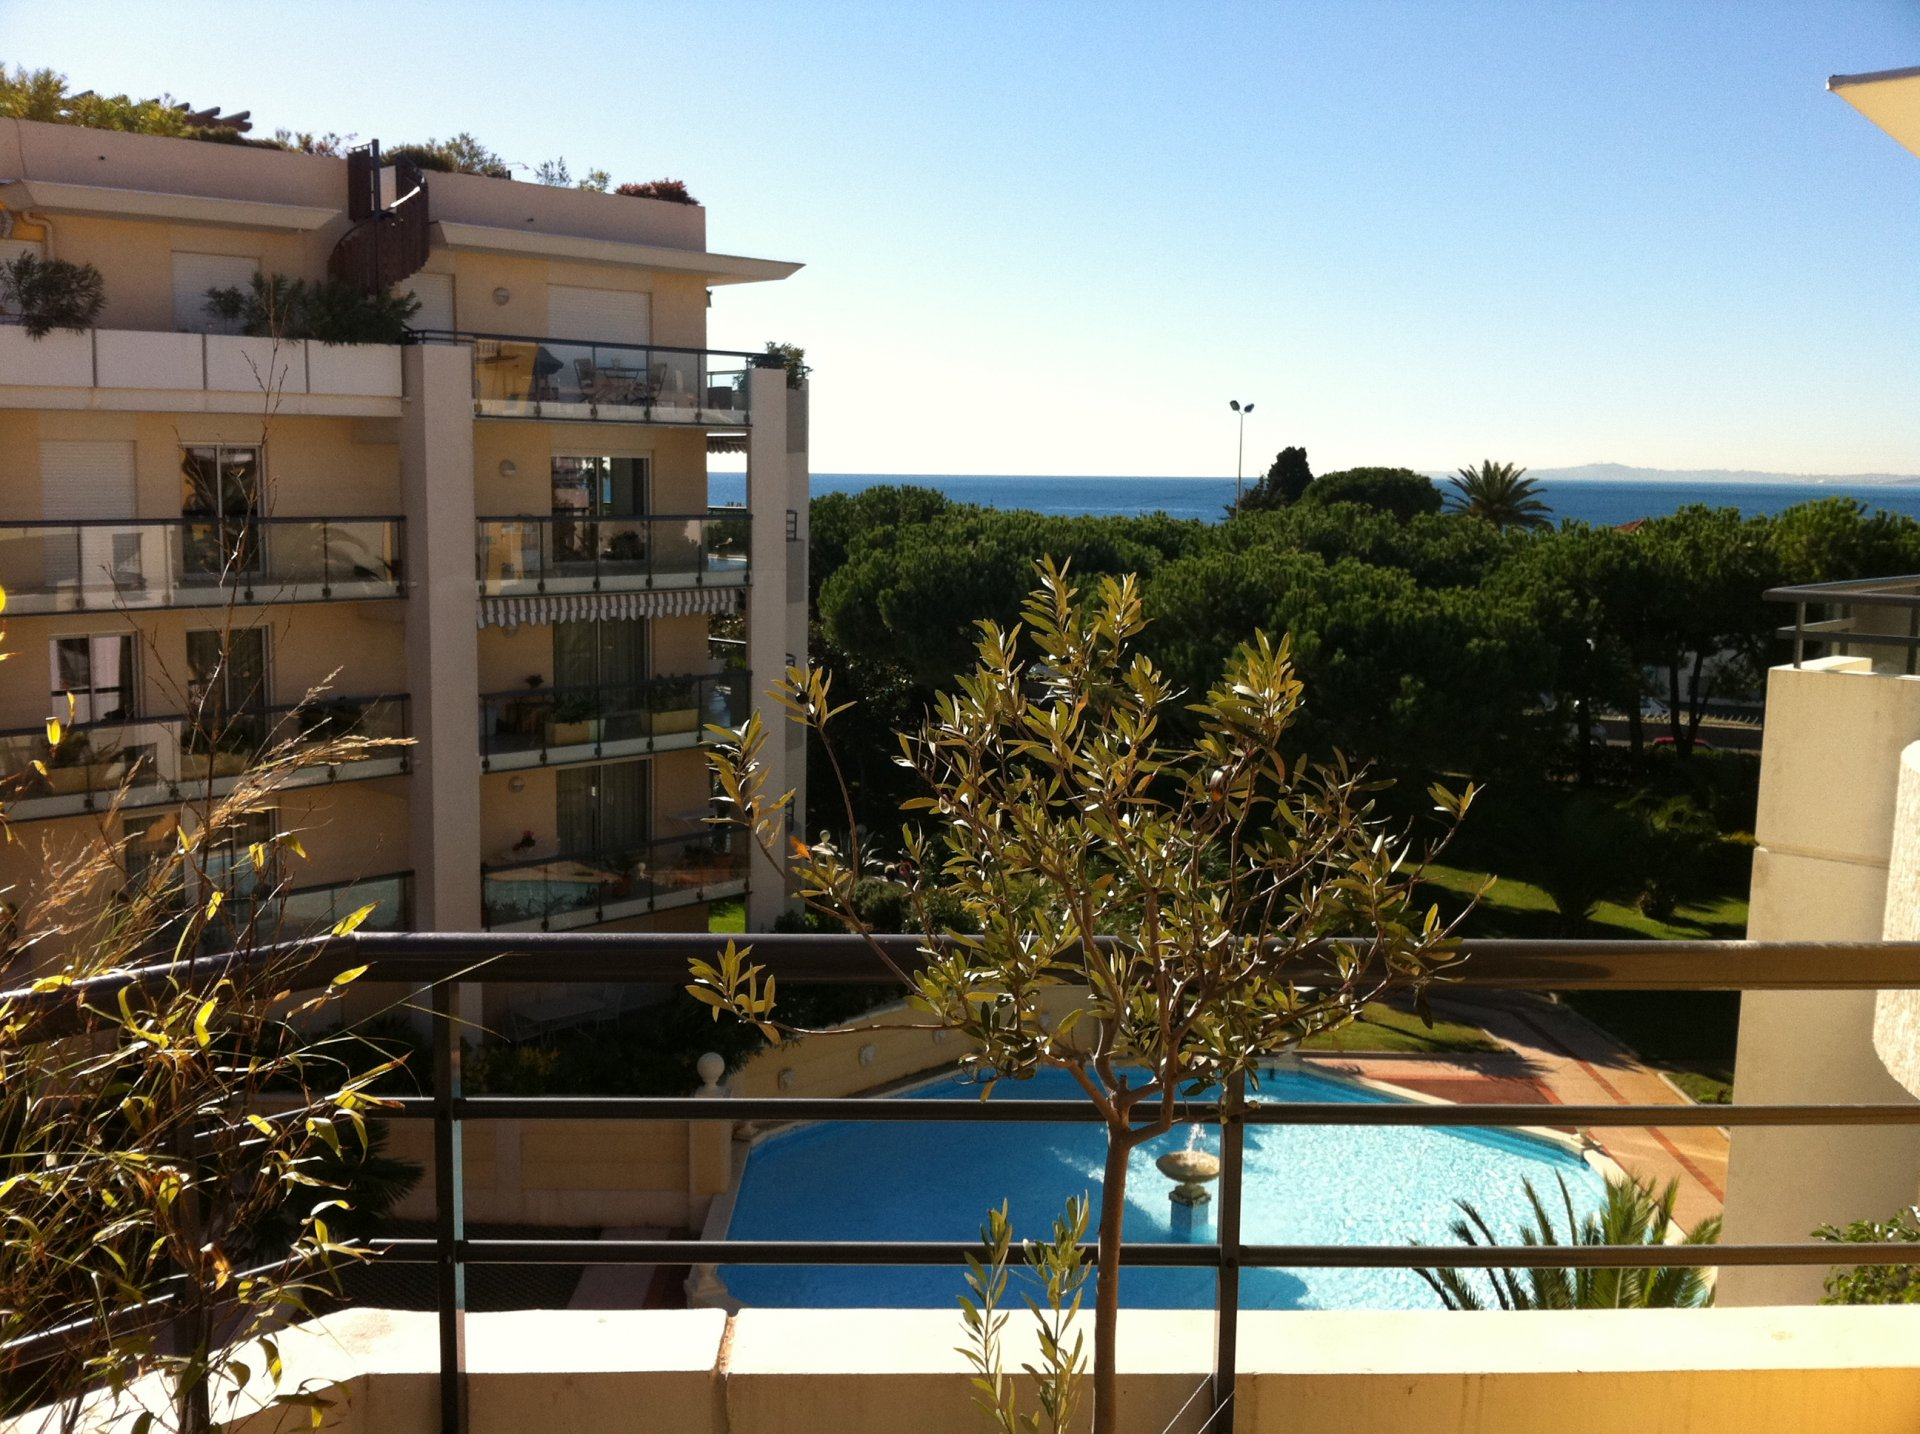 CAGNES s/Mer - 2 Bdr seaview penthouse